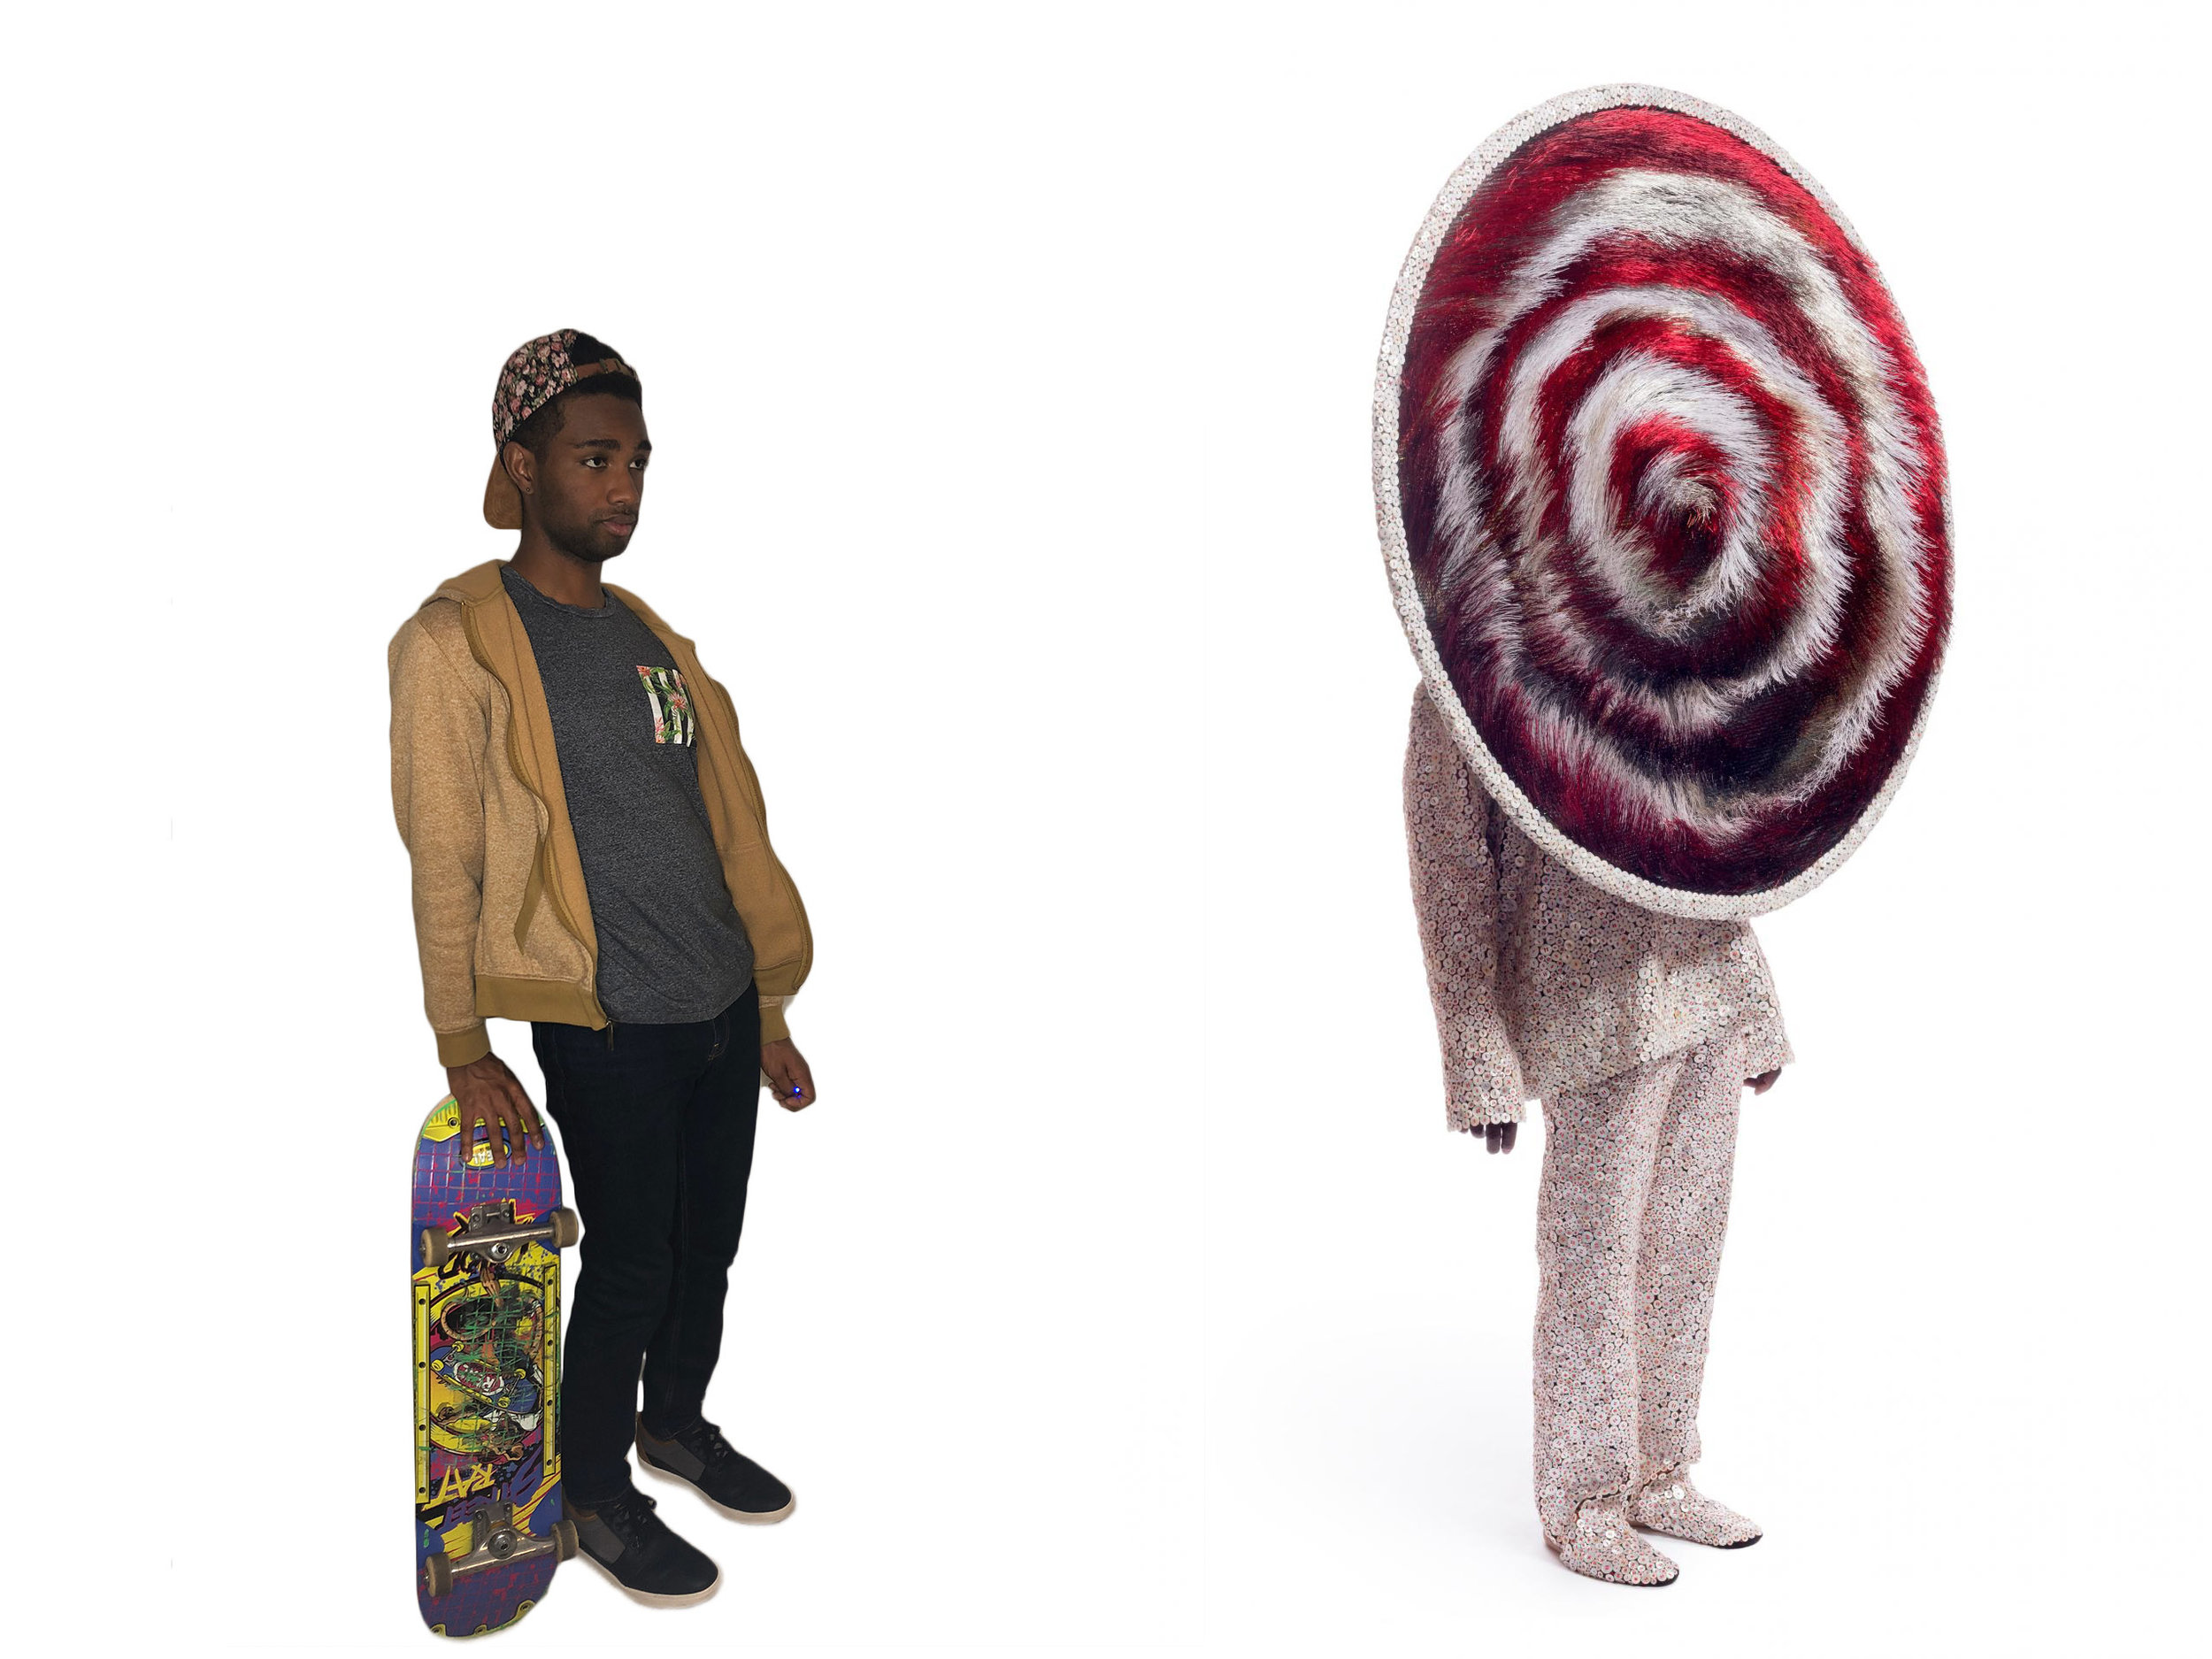 (left) Alex as Skater, 2018. Self Portrait by Alex Michell; (right) Nick Cave,  Soundsuit , 2015 mixed media including wire, bugle beads, buttons, fabric, metal and mannequin © Nick Cave. Courtesy of the artist and Jack Shainman Gallery, New York.